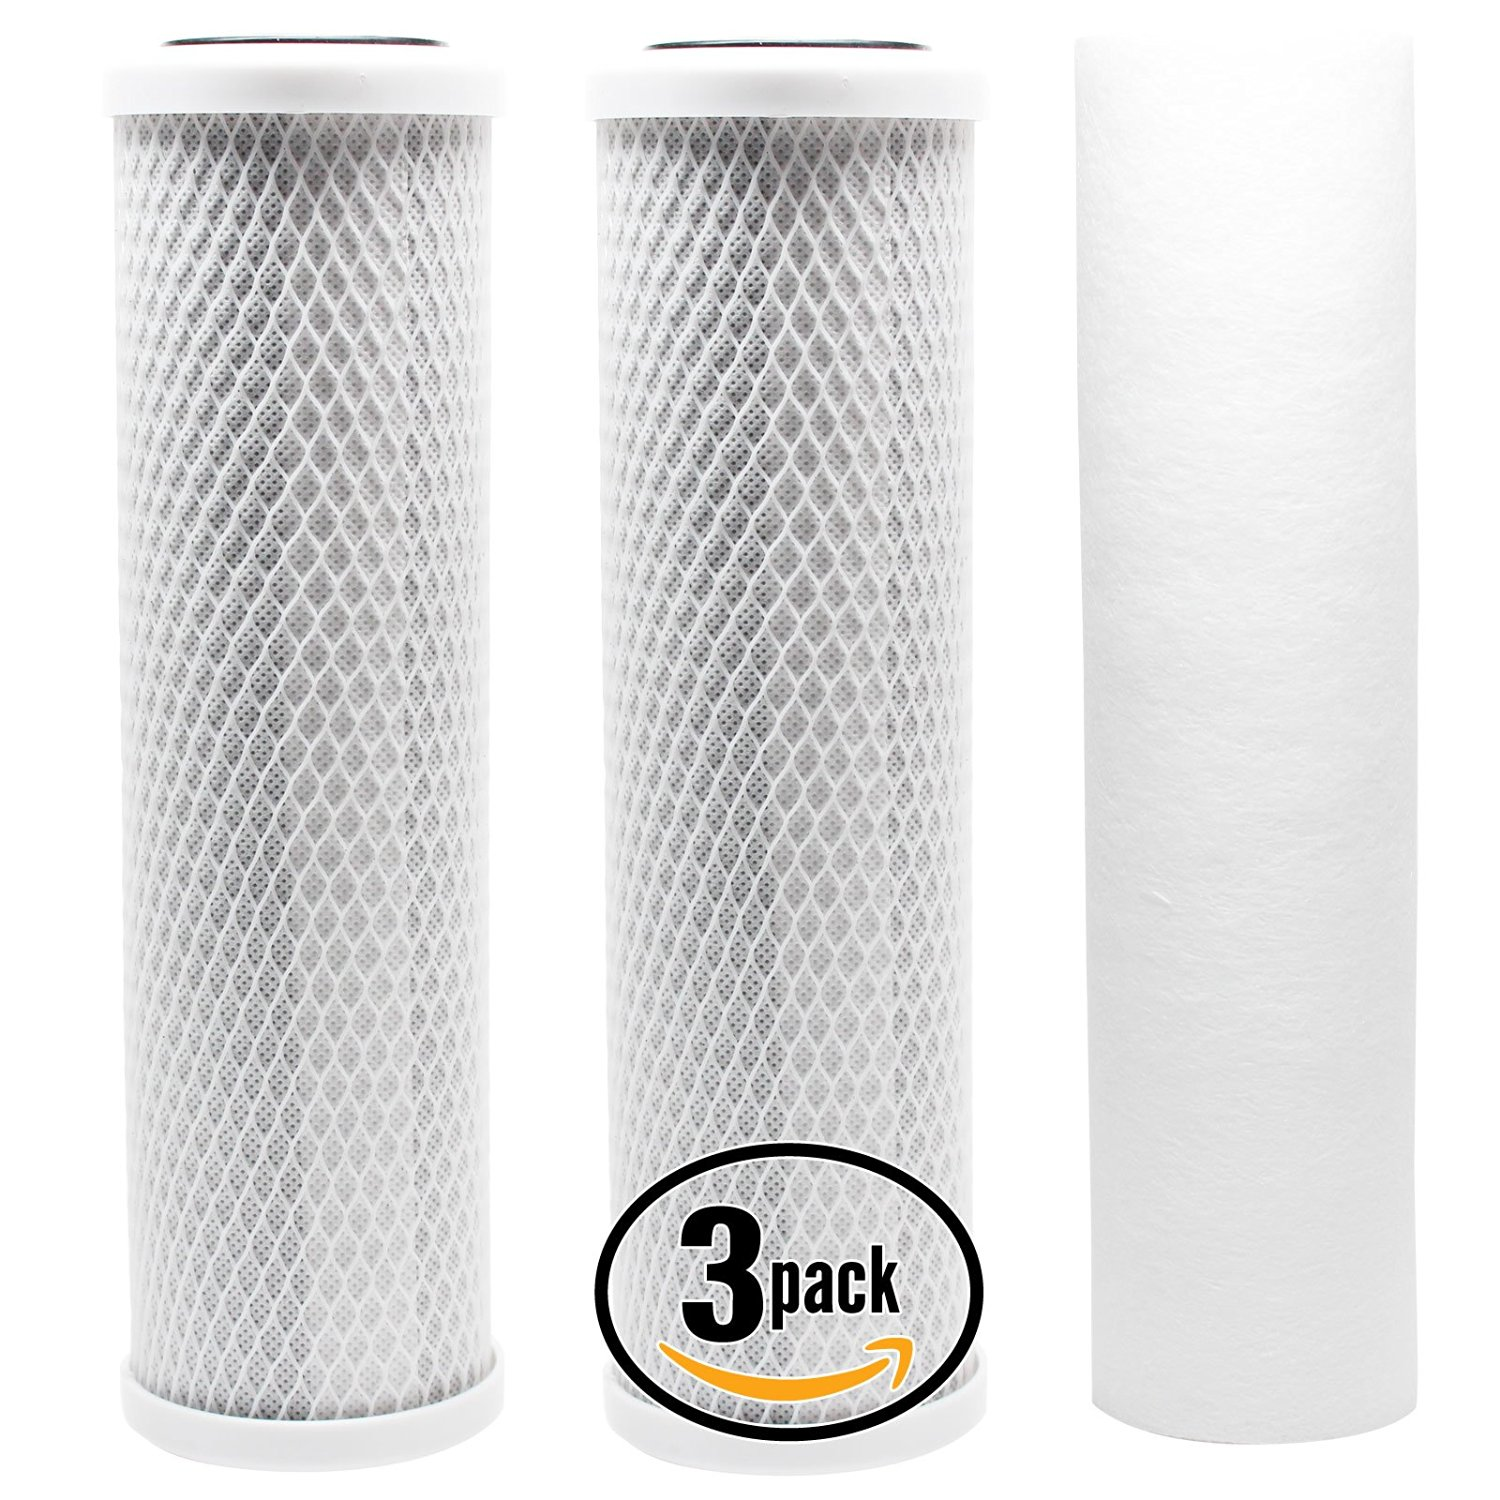 3-Pack Denali Pure Universal 10 inch Carbon Block, Sediment Filter - Compatible with APEC ROES-50, APEC RO-90, Watts WP5-50, APEC ROES-PH75, Watts WP-5, APEC RO-PERM, Watts RO-TFM-5SV, PureValue 5EZ50